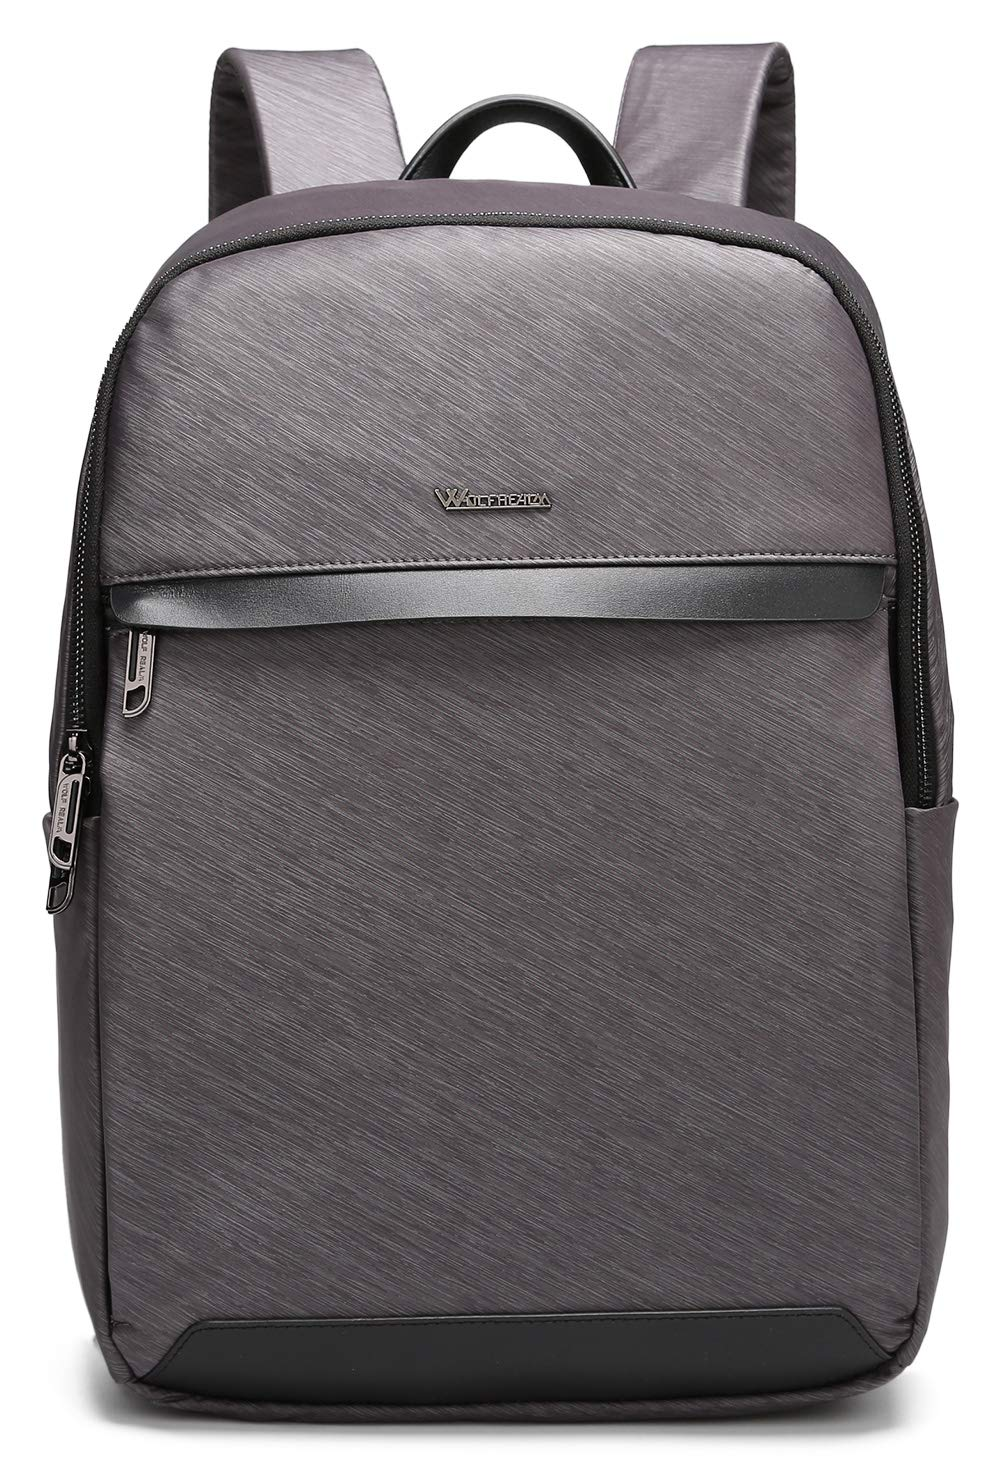 31bcd2ada488 Amazon.com: Wolfrealm Laptop Backpack for Women&Men Business ...